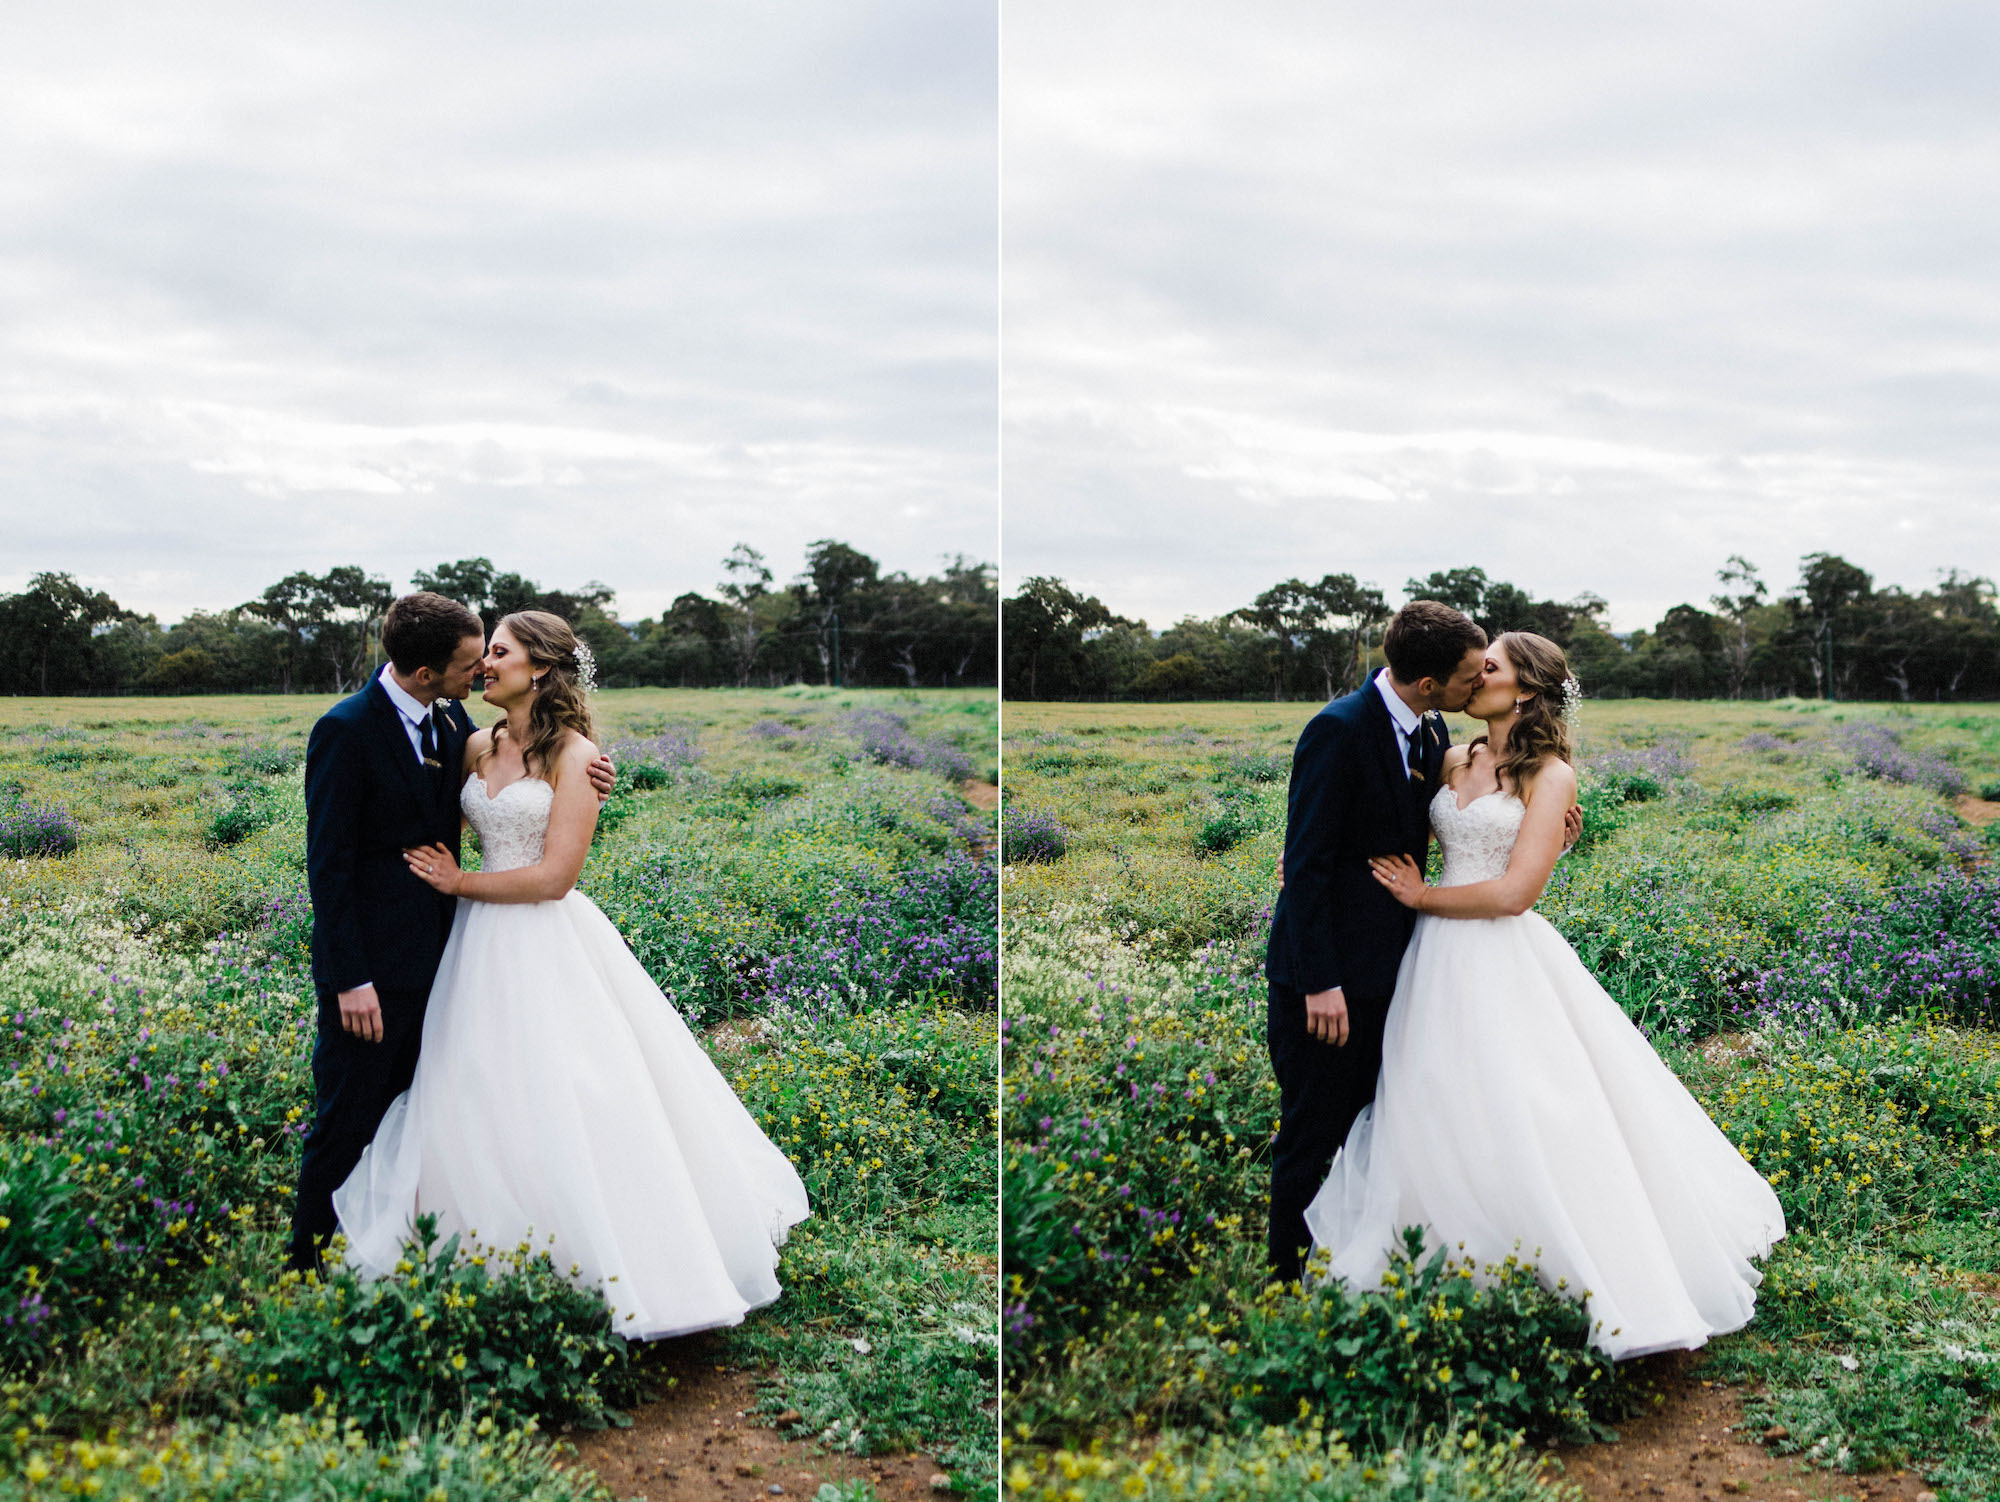 Authentic wedding portraits of the bride & groom sharing a kiss in a field of flowers in Australia's spring time.